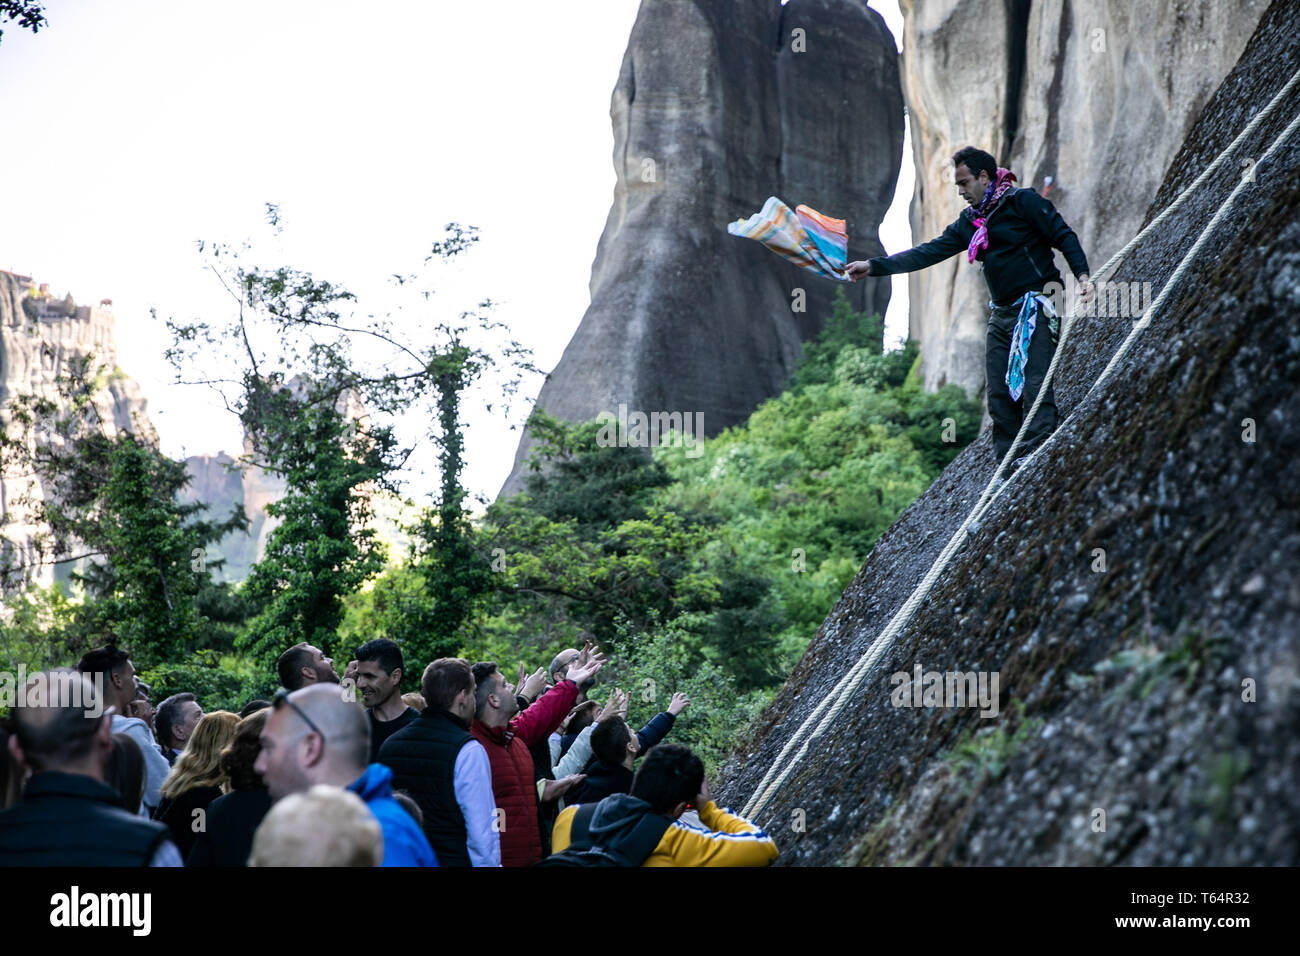 Meteora, Greece. 29th Apr, 2019. A climber gives away scarves at Meteora complex of sandstone cliffs in Kastraki village, central Greece, on April 29, 2019. Following a 300-year traditional custom during the annual celebrations of Saint George's Day, climbers hang colorful scarves near an old ruined monastery built in a cave 40 meters above the village on the sandstone rocks and return with the old ones, which can be given away as a token of good health. Credit: Lefteris Partsalis/Xinhua/Alamy Live News - Stock Image